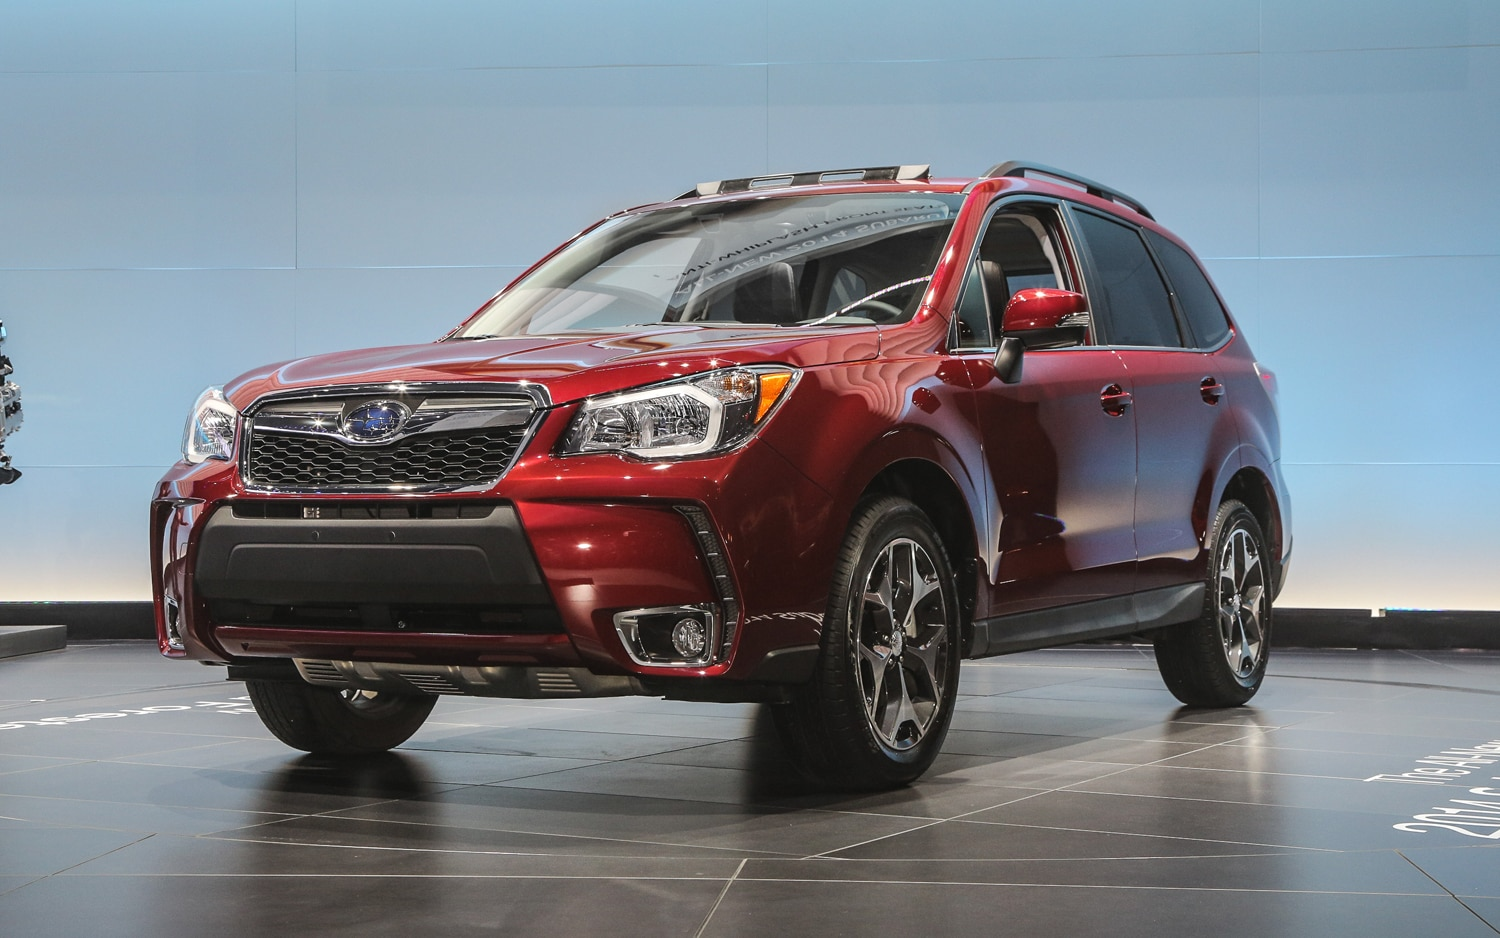 2014 Subaru Forester Front Three Quarter 21